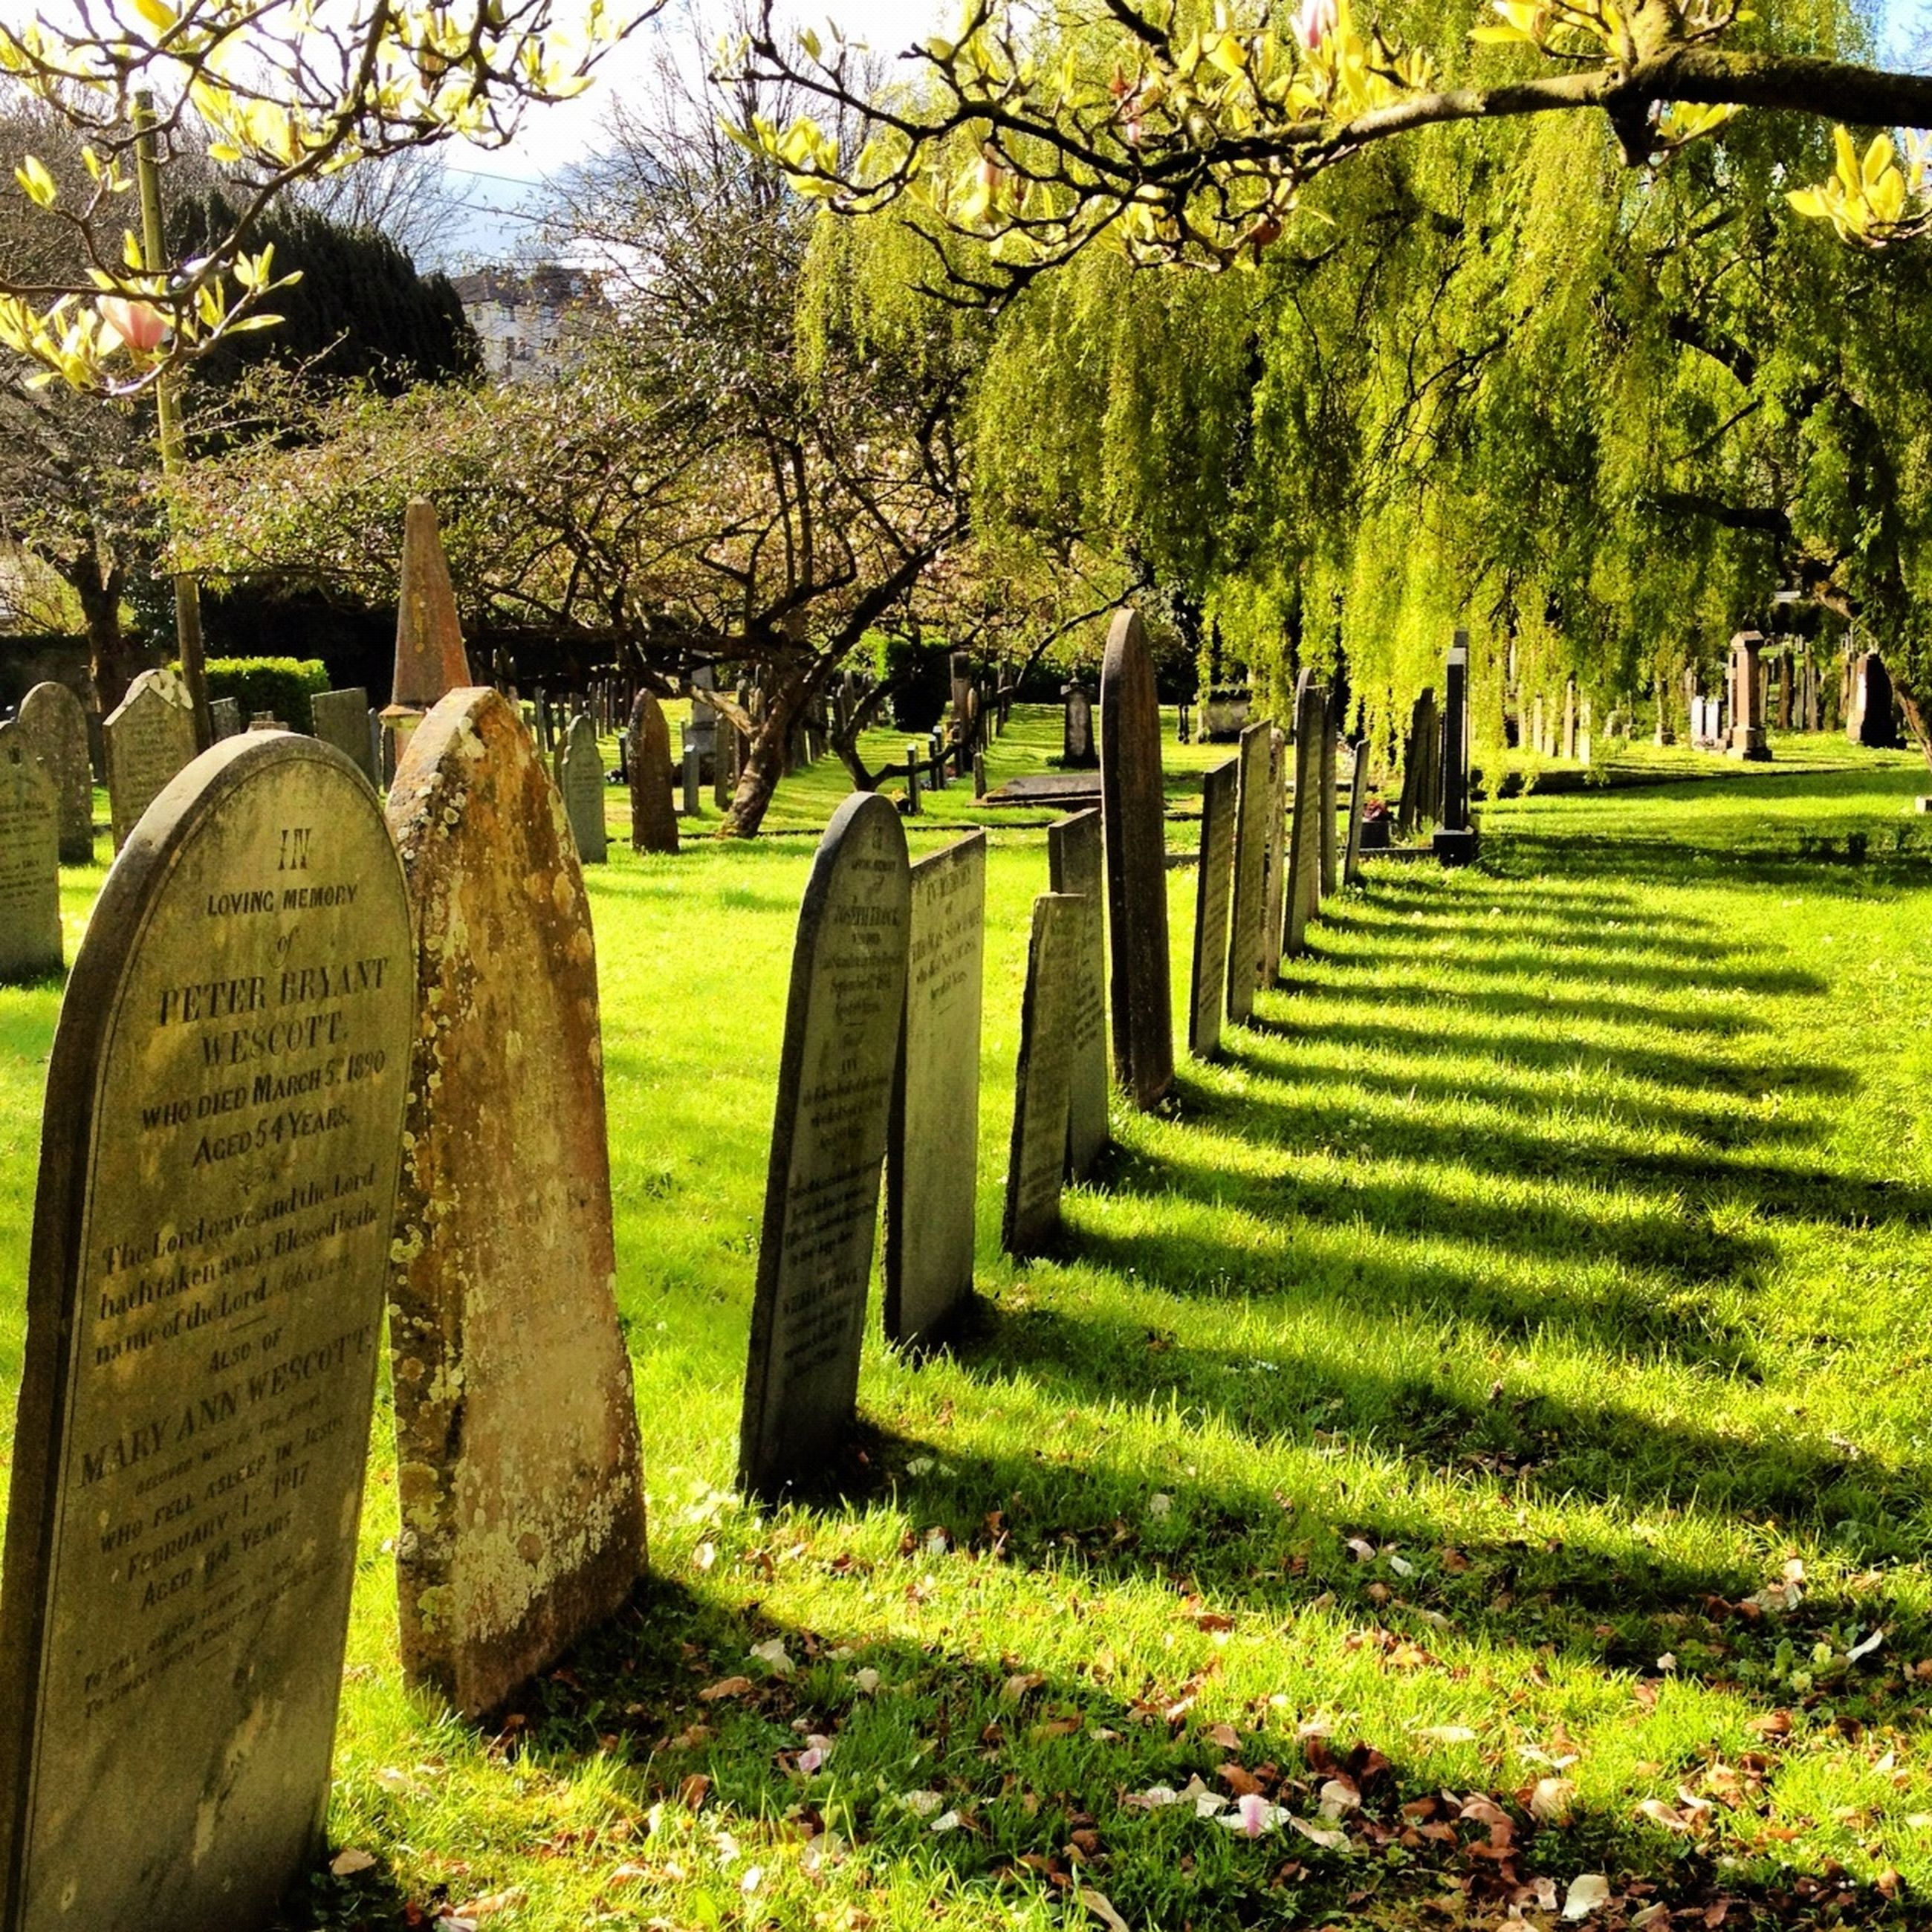 tree, grass, green color, growth, park - man made space, field, tranquility, nature, tree trunk, grassy, park, branch, tranquil scene, beauty in nature, cemetery, fence, in a row, day, tombstone, scenics